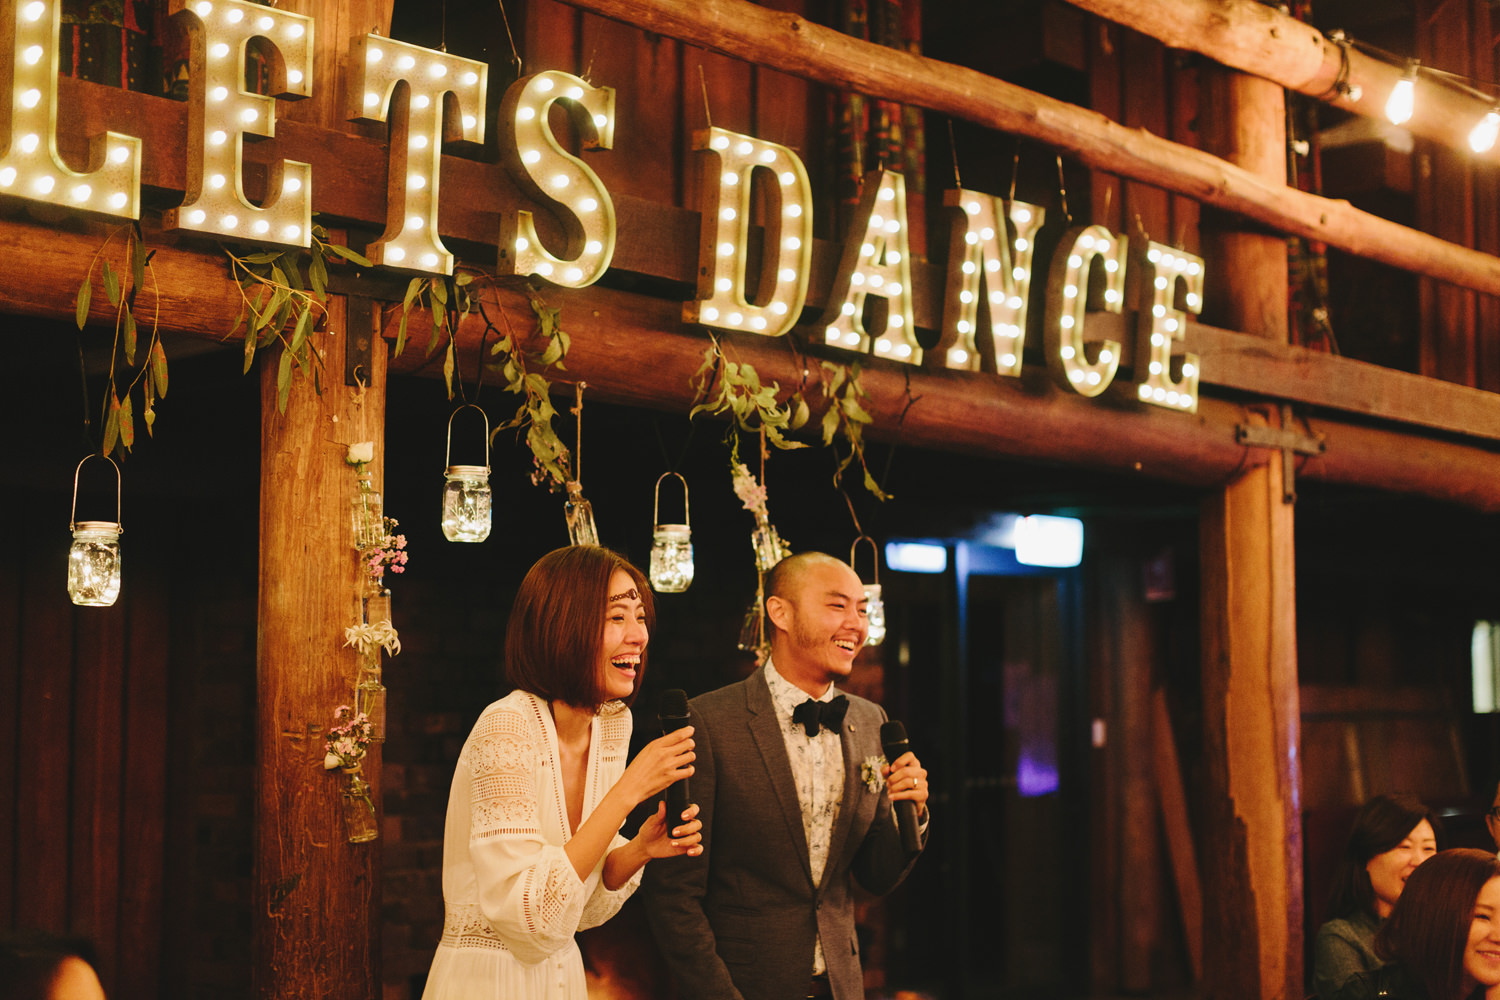 215-Barn_Wedding_Australia_Sam_Ting.jpg